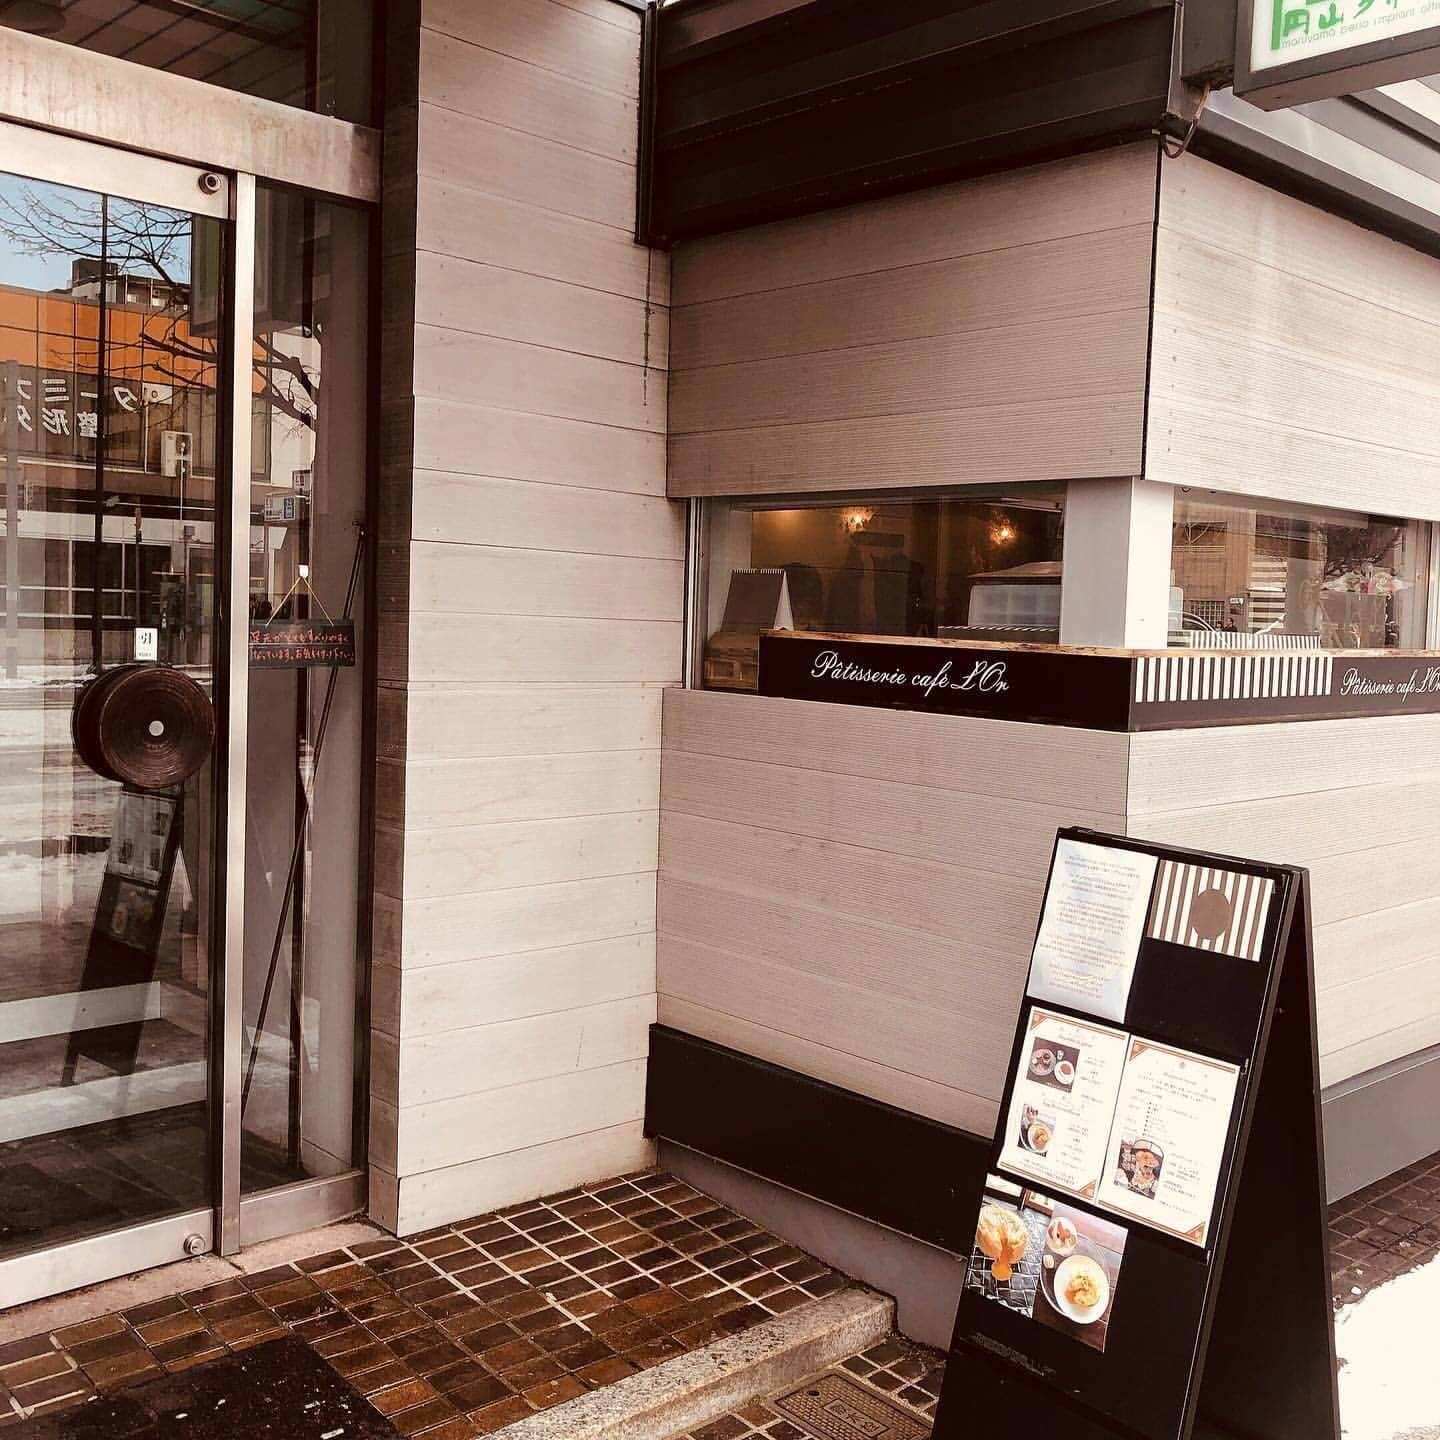 Patisserie cafe L'Or(パティスリーカフェ ロール)の外観